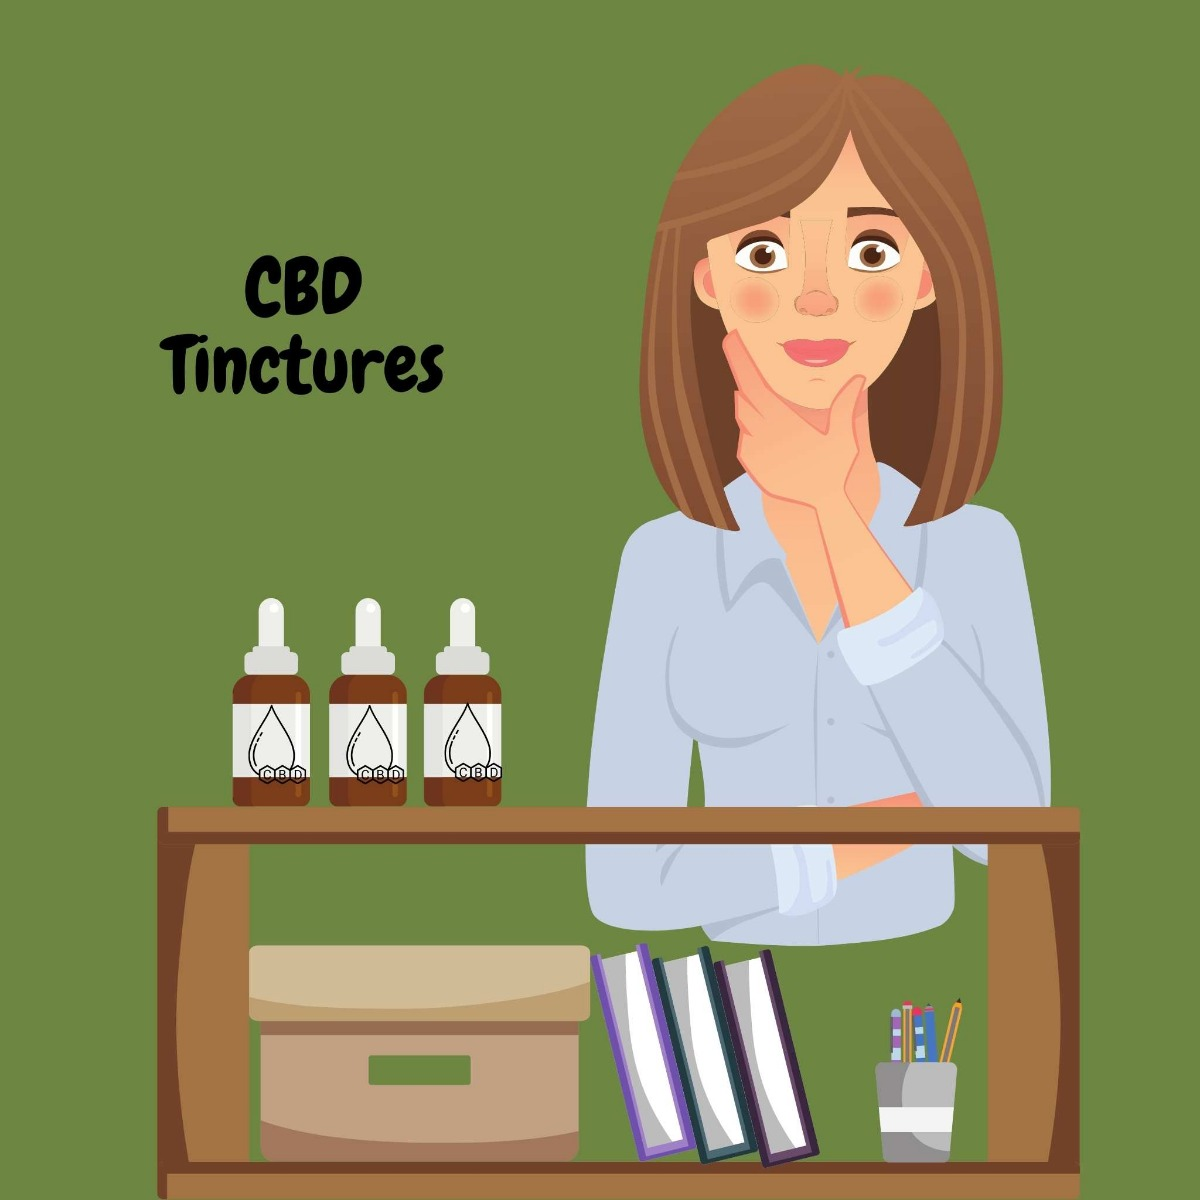 CBD Tincture bottles on a desk with a woman thinking about if cbd is for her